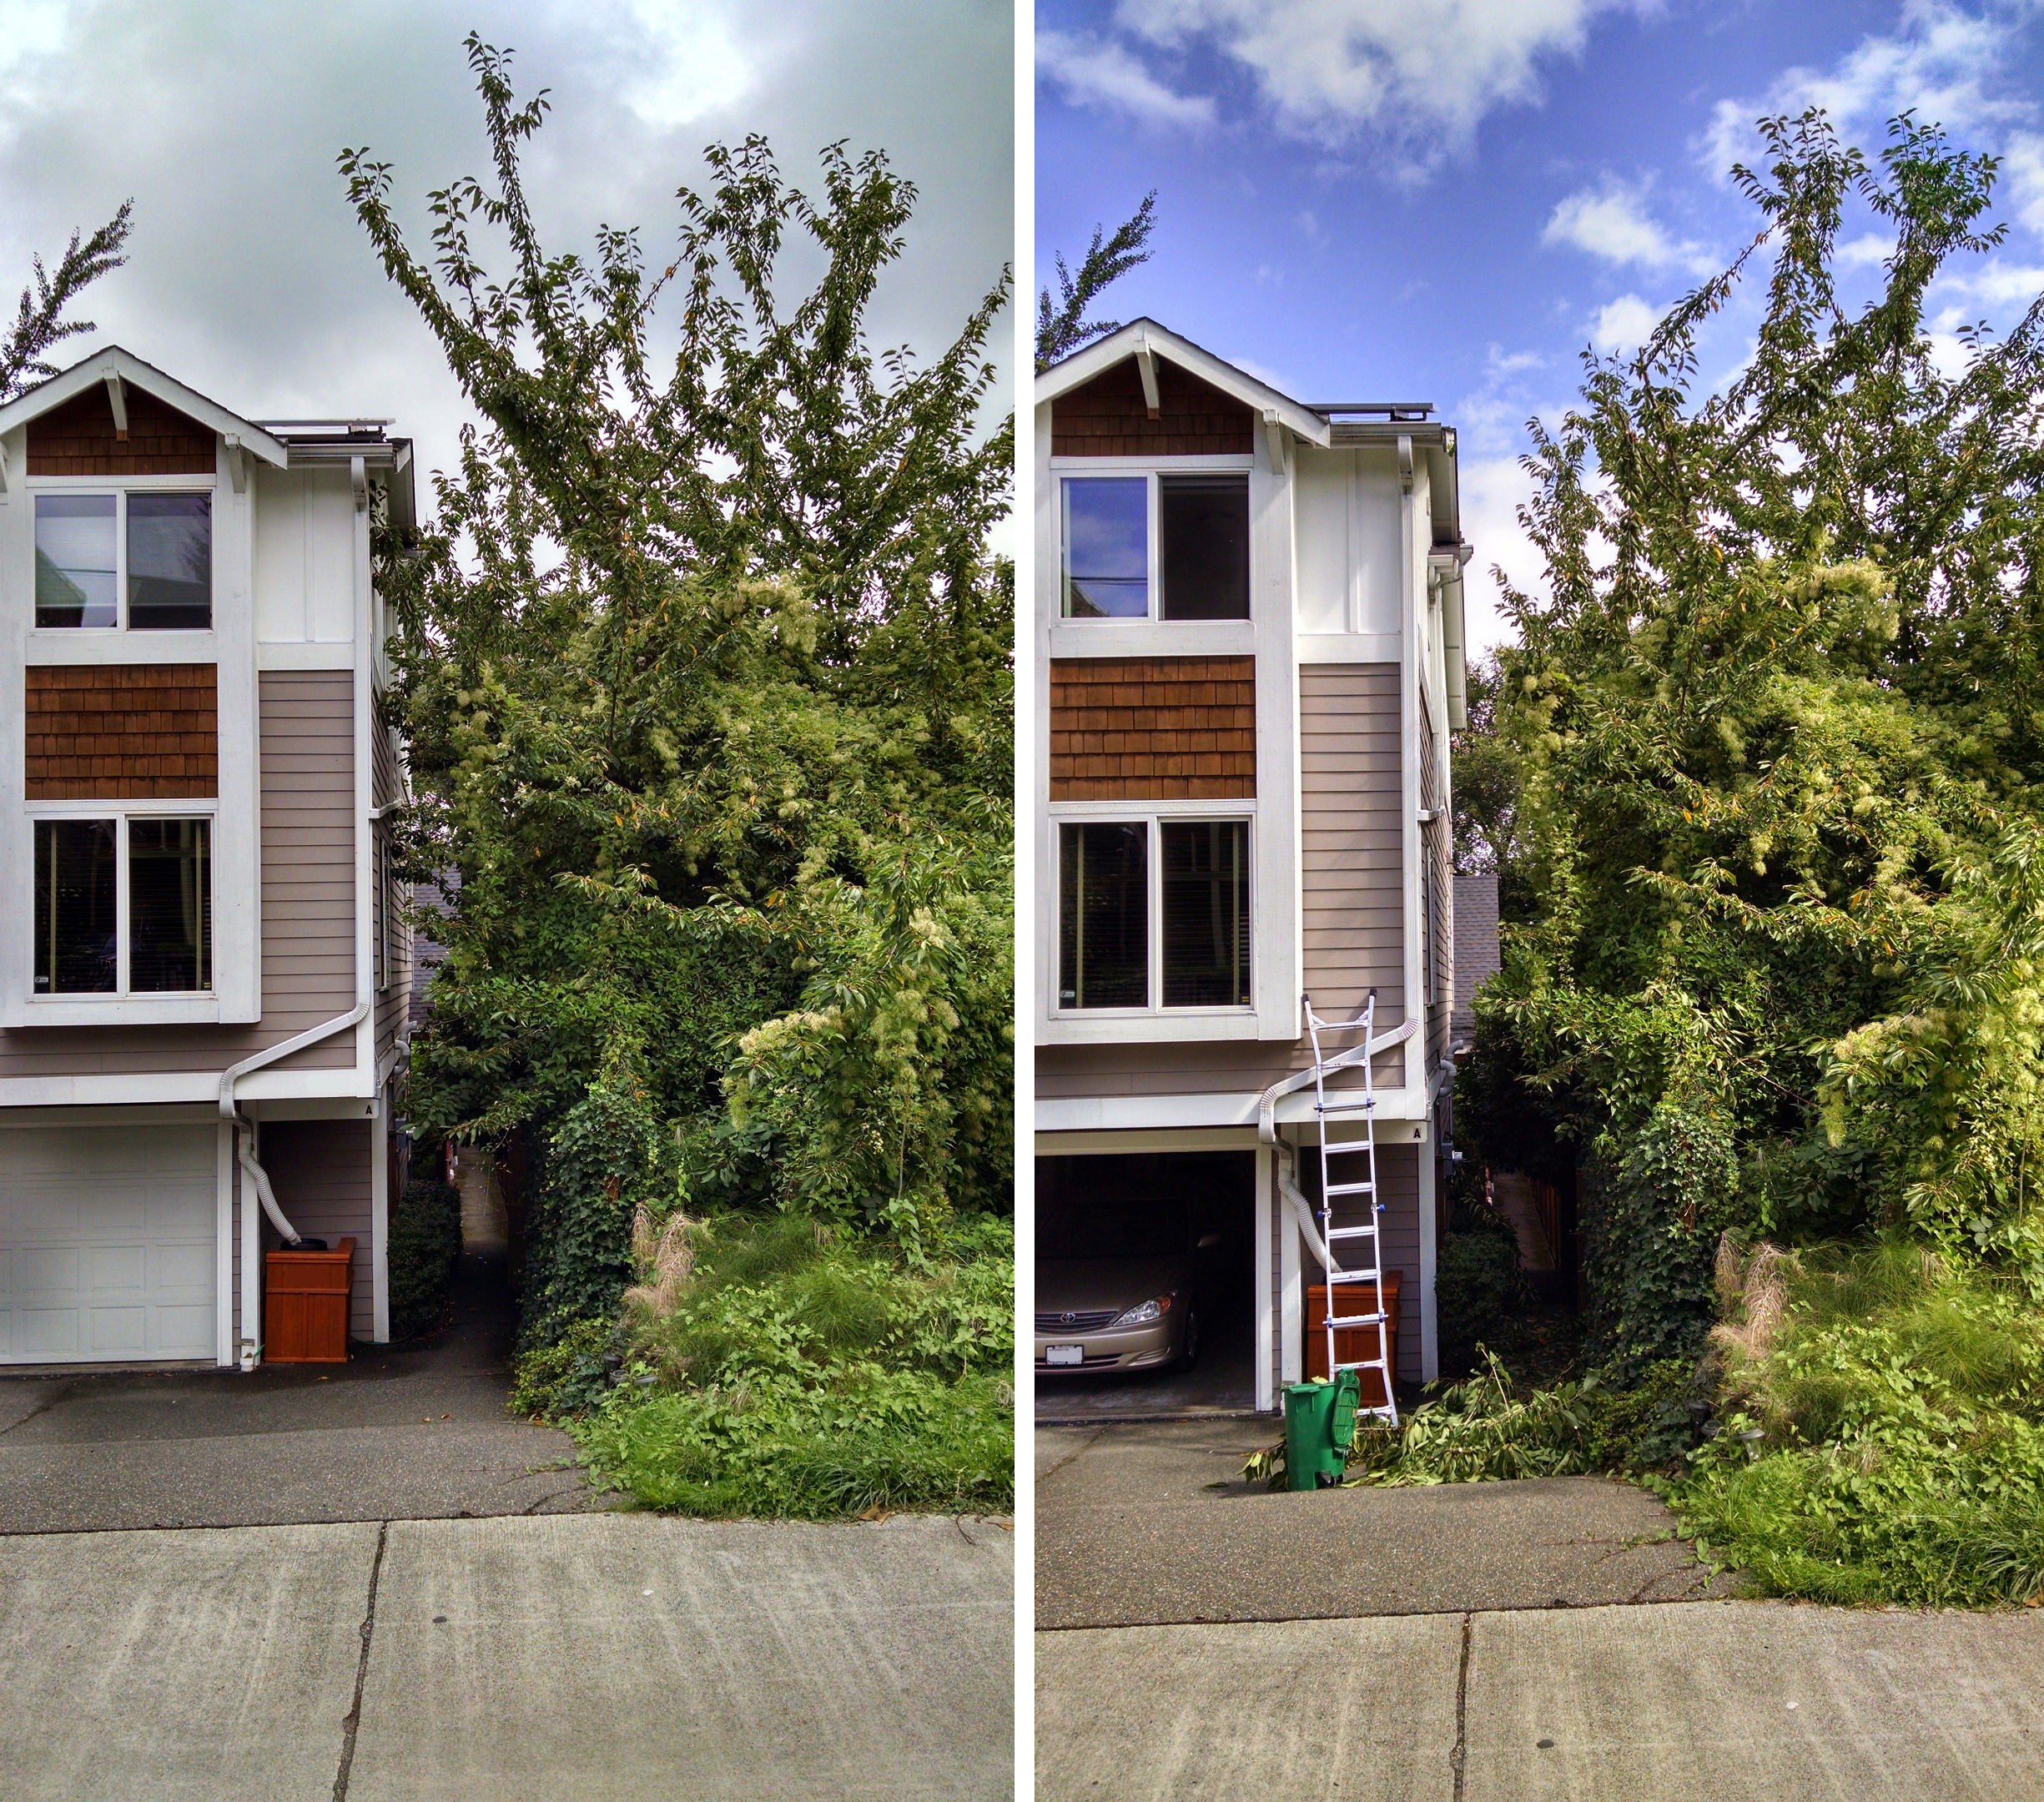 Before pruning on the left, after pruning on the right.